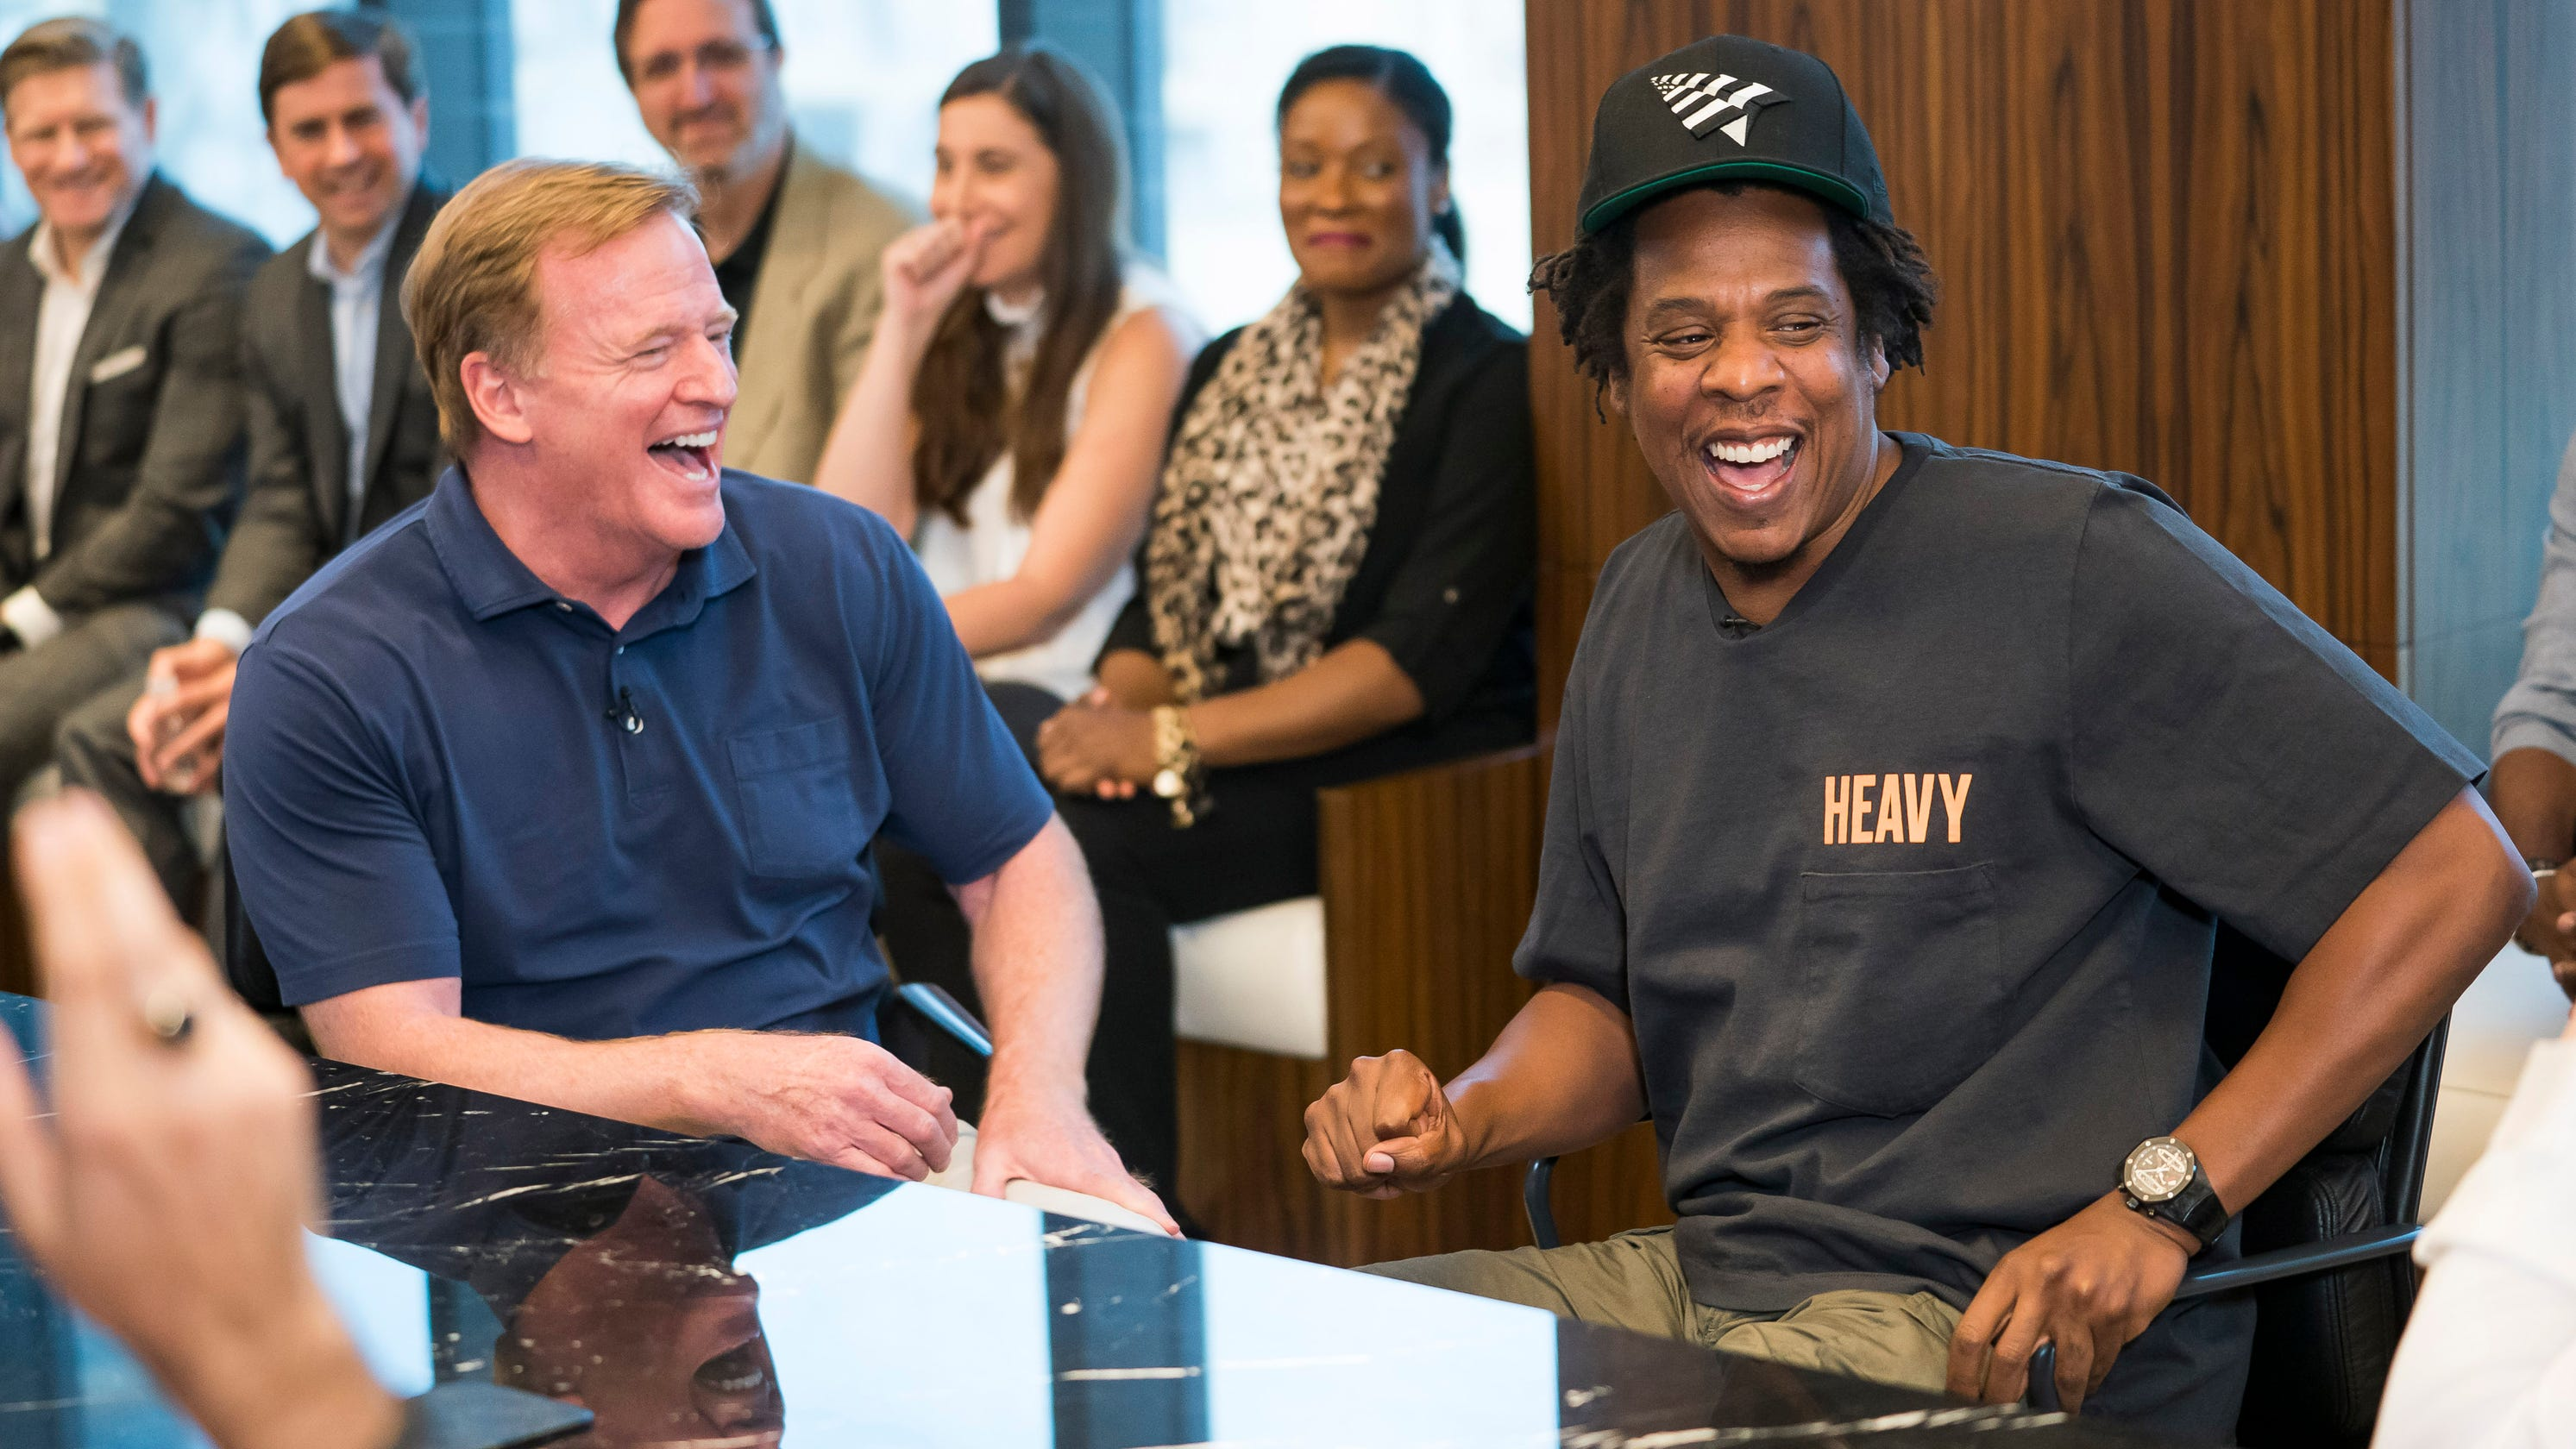 Non-profit group backed by NFL, Roc Nation questioned over dreadlock cutting